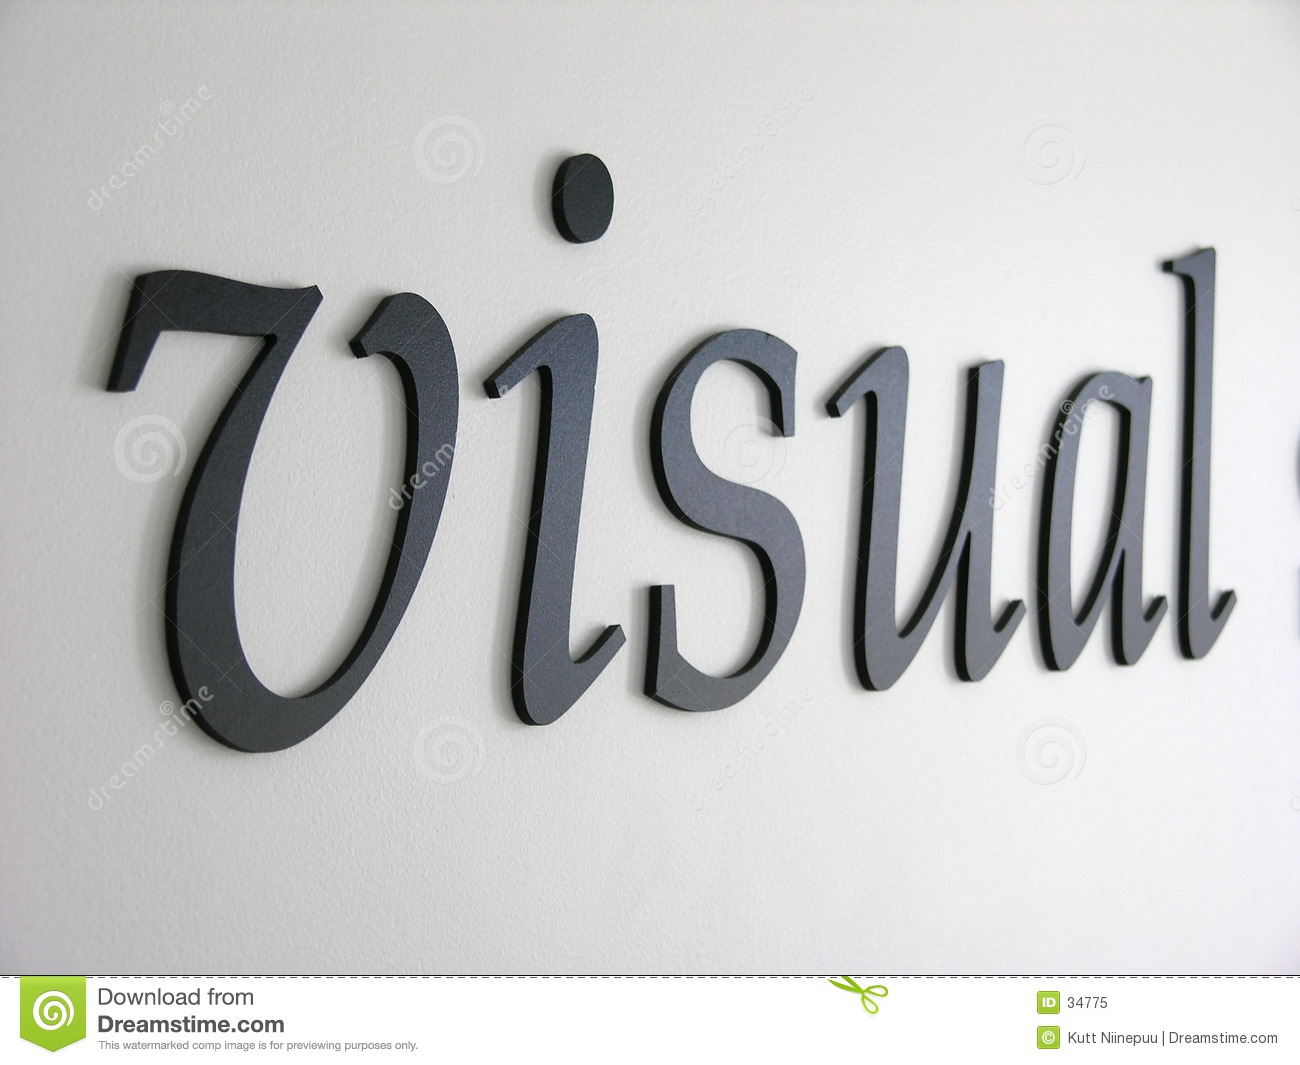 Embossed letters forming the word visual. Denim texture visible when ...